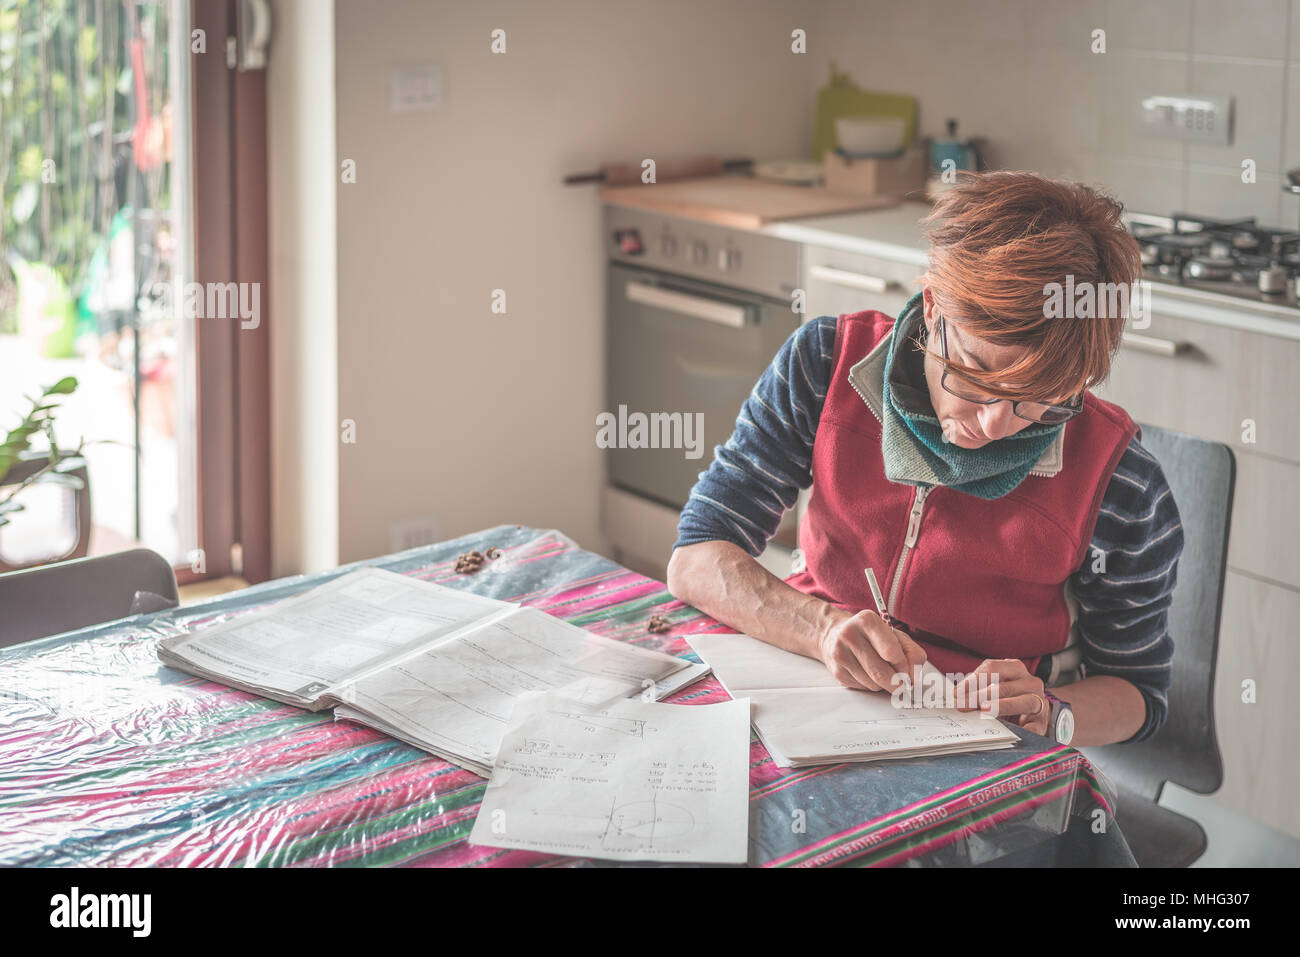 Woman with eyeglasses sitting at table, reading and handwriting paperwork and documents. Selective focus, home interiors. Concept of working at home. - Stock Image